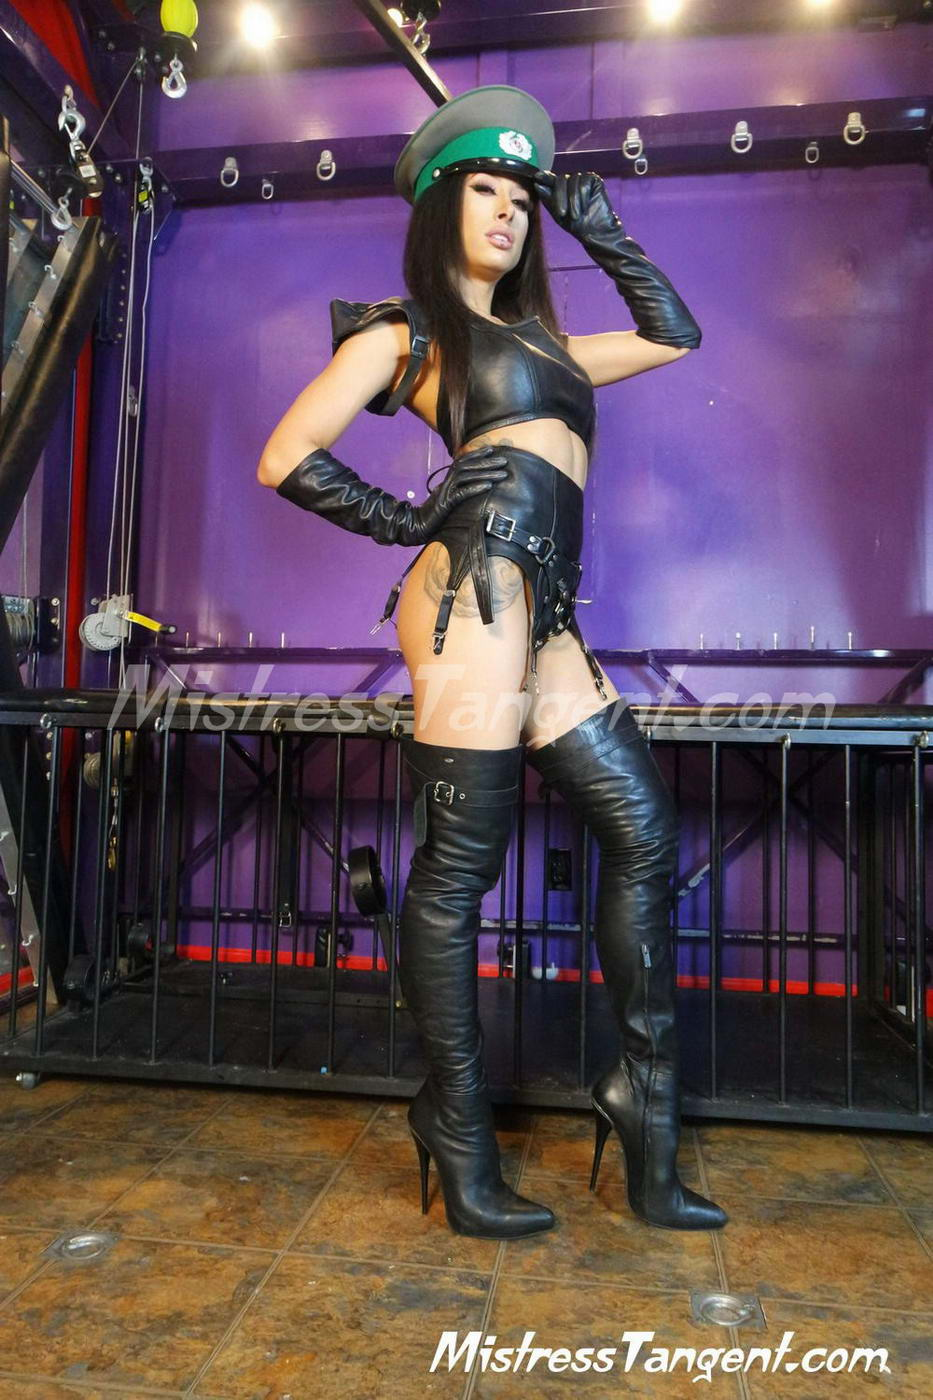 image Thigh high leather boots on bed humping part 1